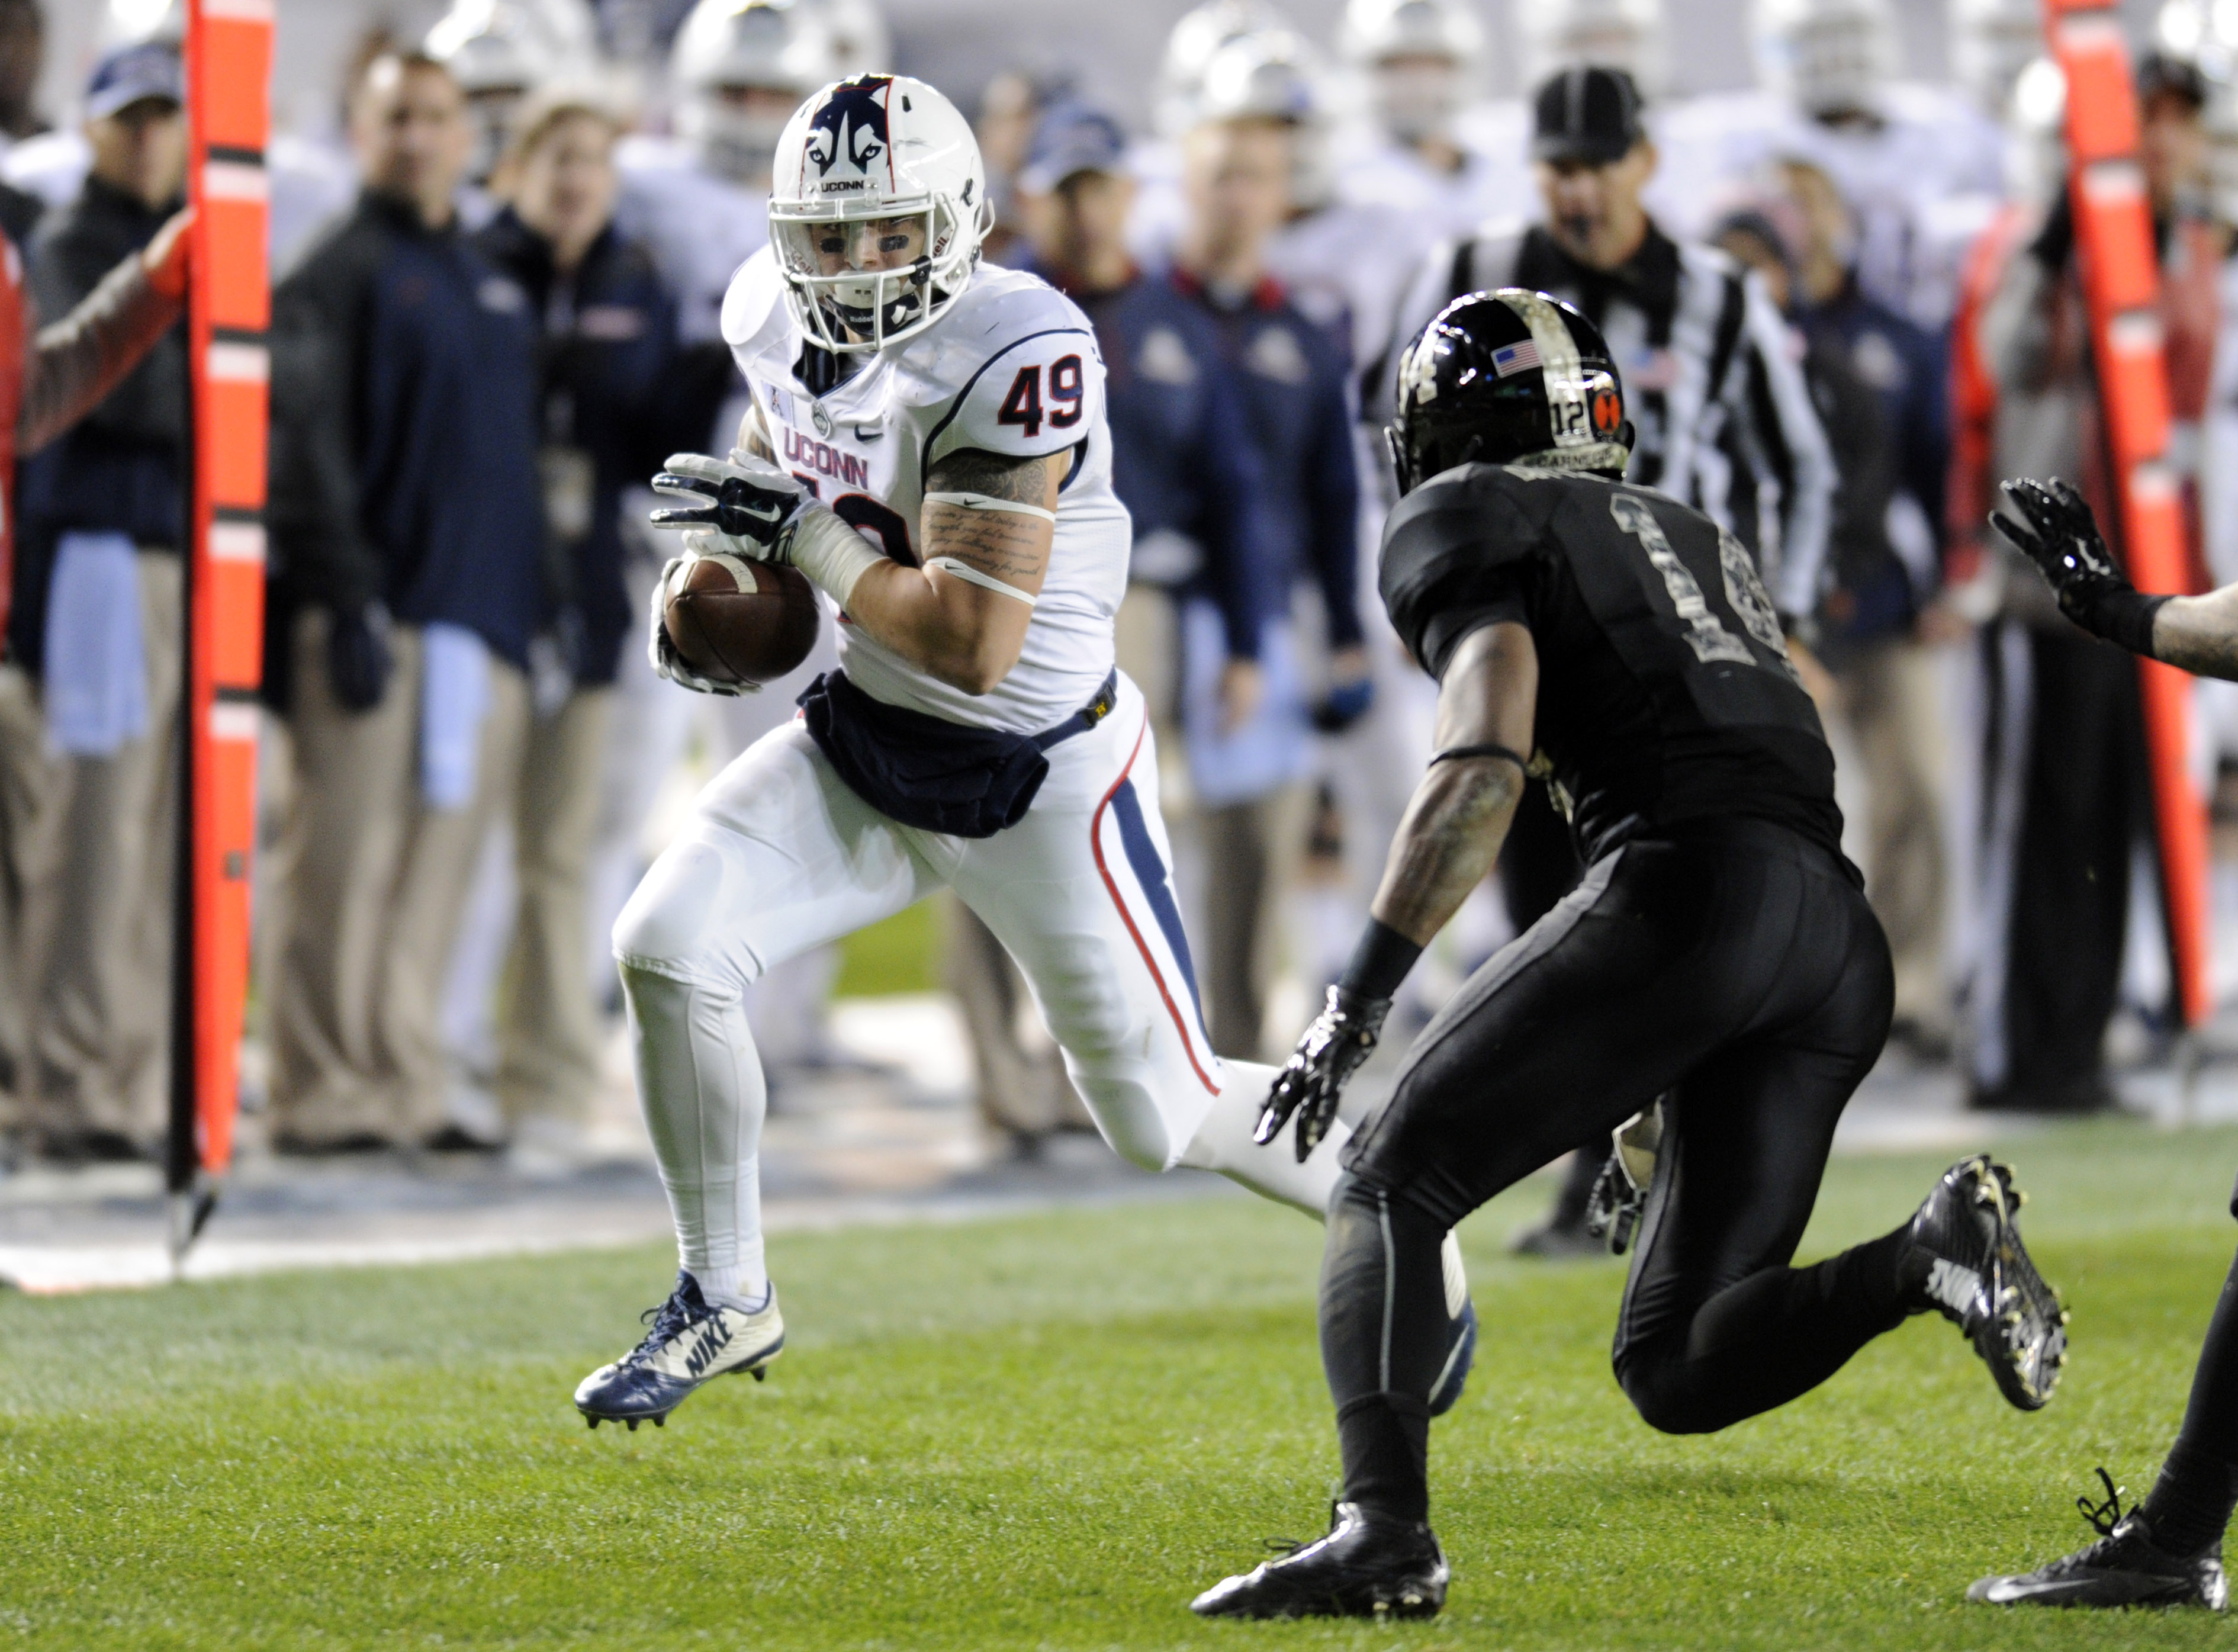 Connecticut tight end Sean McQuillan, left, runs with the ball as Army defensive back Chris Carnegie closes in during the second half of an NCAA college football game Saturday, Nov. 8, 2014, at Yankee Stadium in New York. Army won 35-21. (AP Photo/Bill Ko